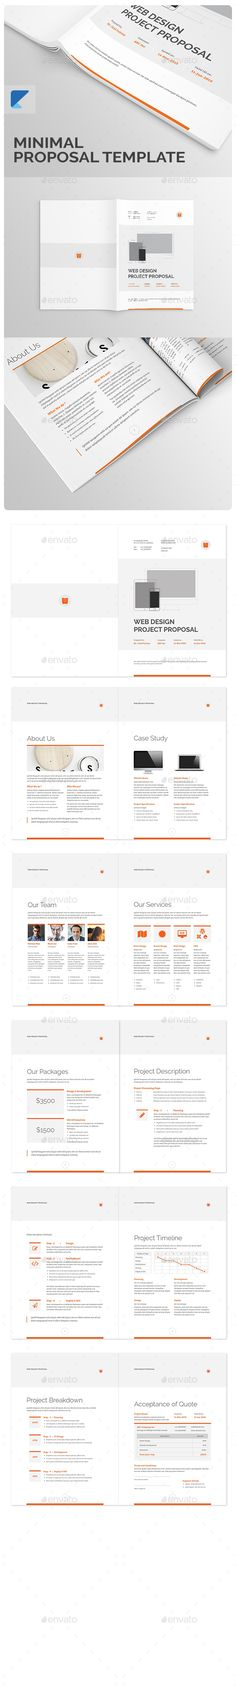 invoice Template and Stationary design - website proposal template